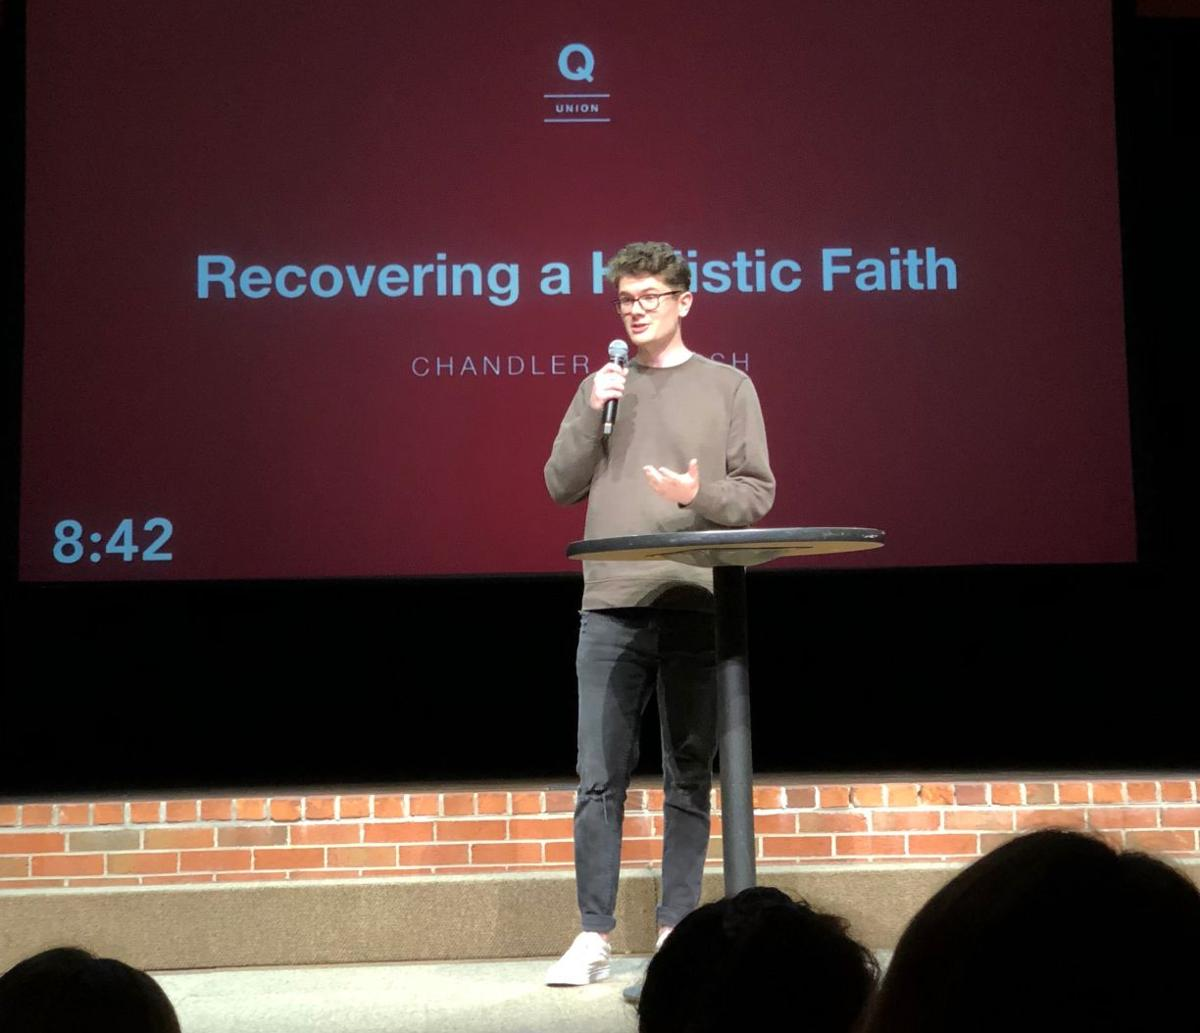 """Senior Communications major Chandler McCosh delivered his talk titled """"Recovering a Holistic Faith"""" at Thursday evening's Q Union conference.  Photo courtesy of Matthew Taylor"""